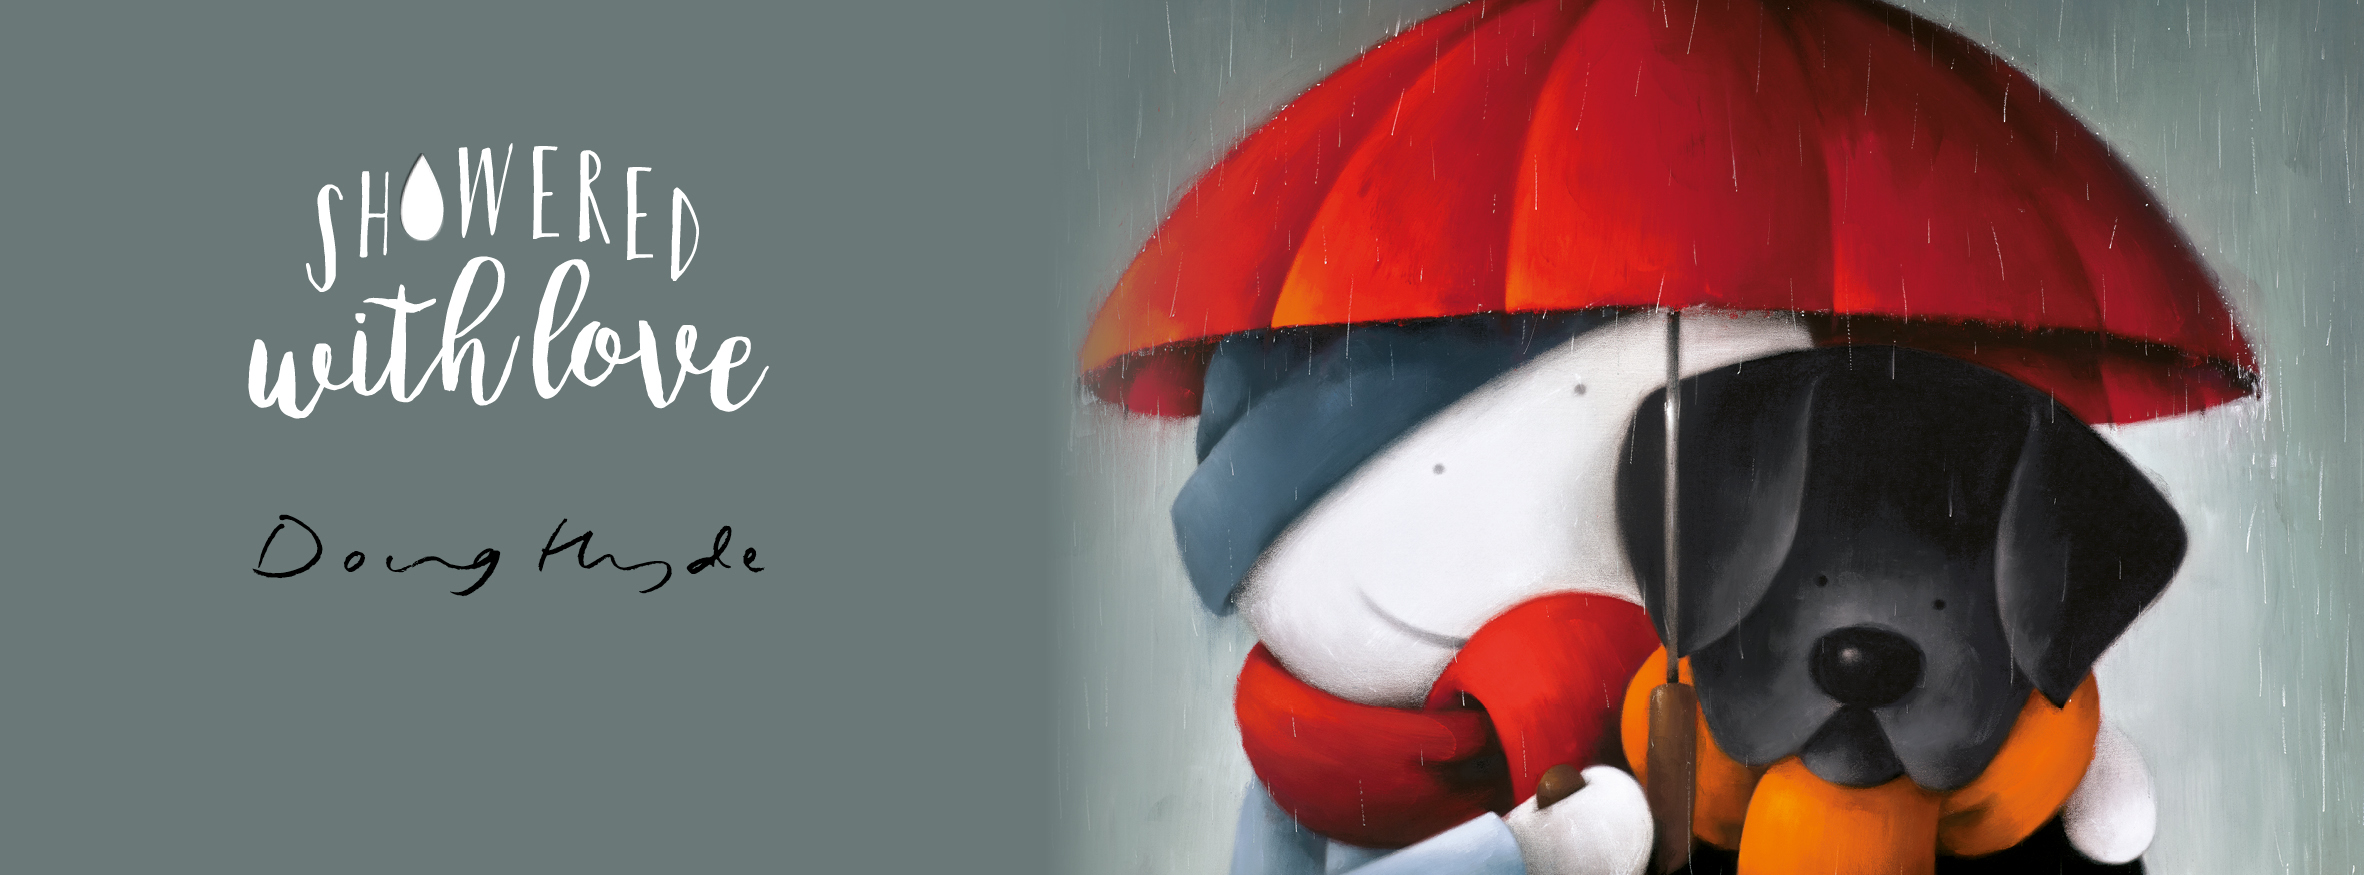 Doug Hyde   Showered With Love